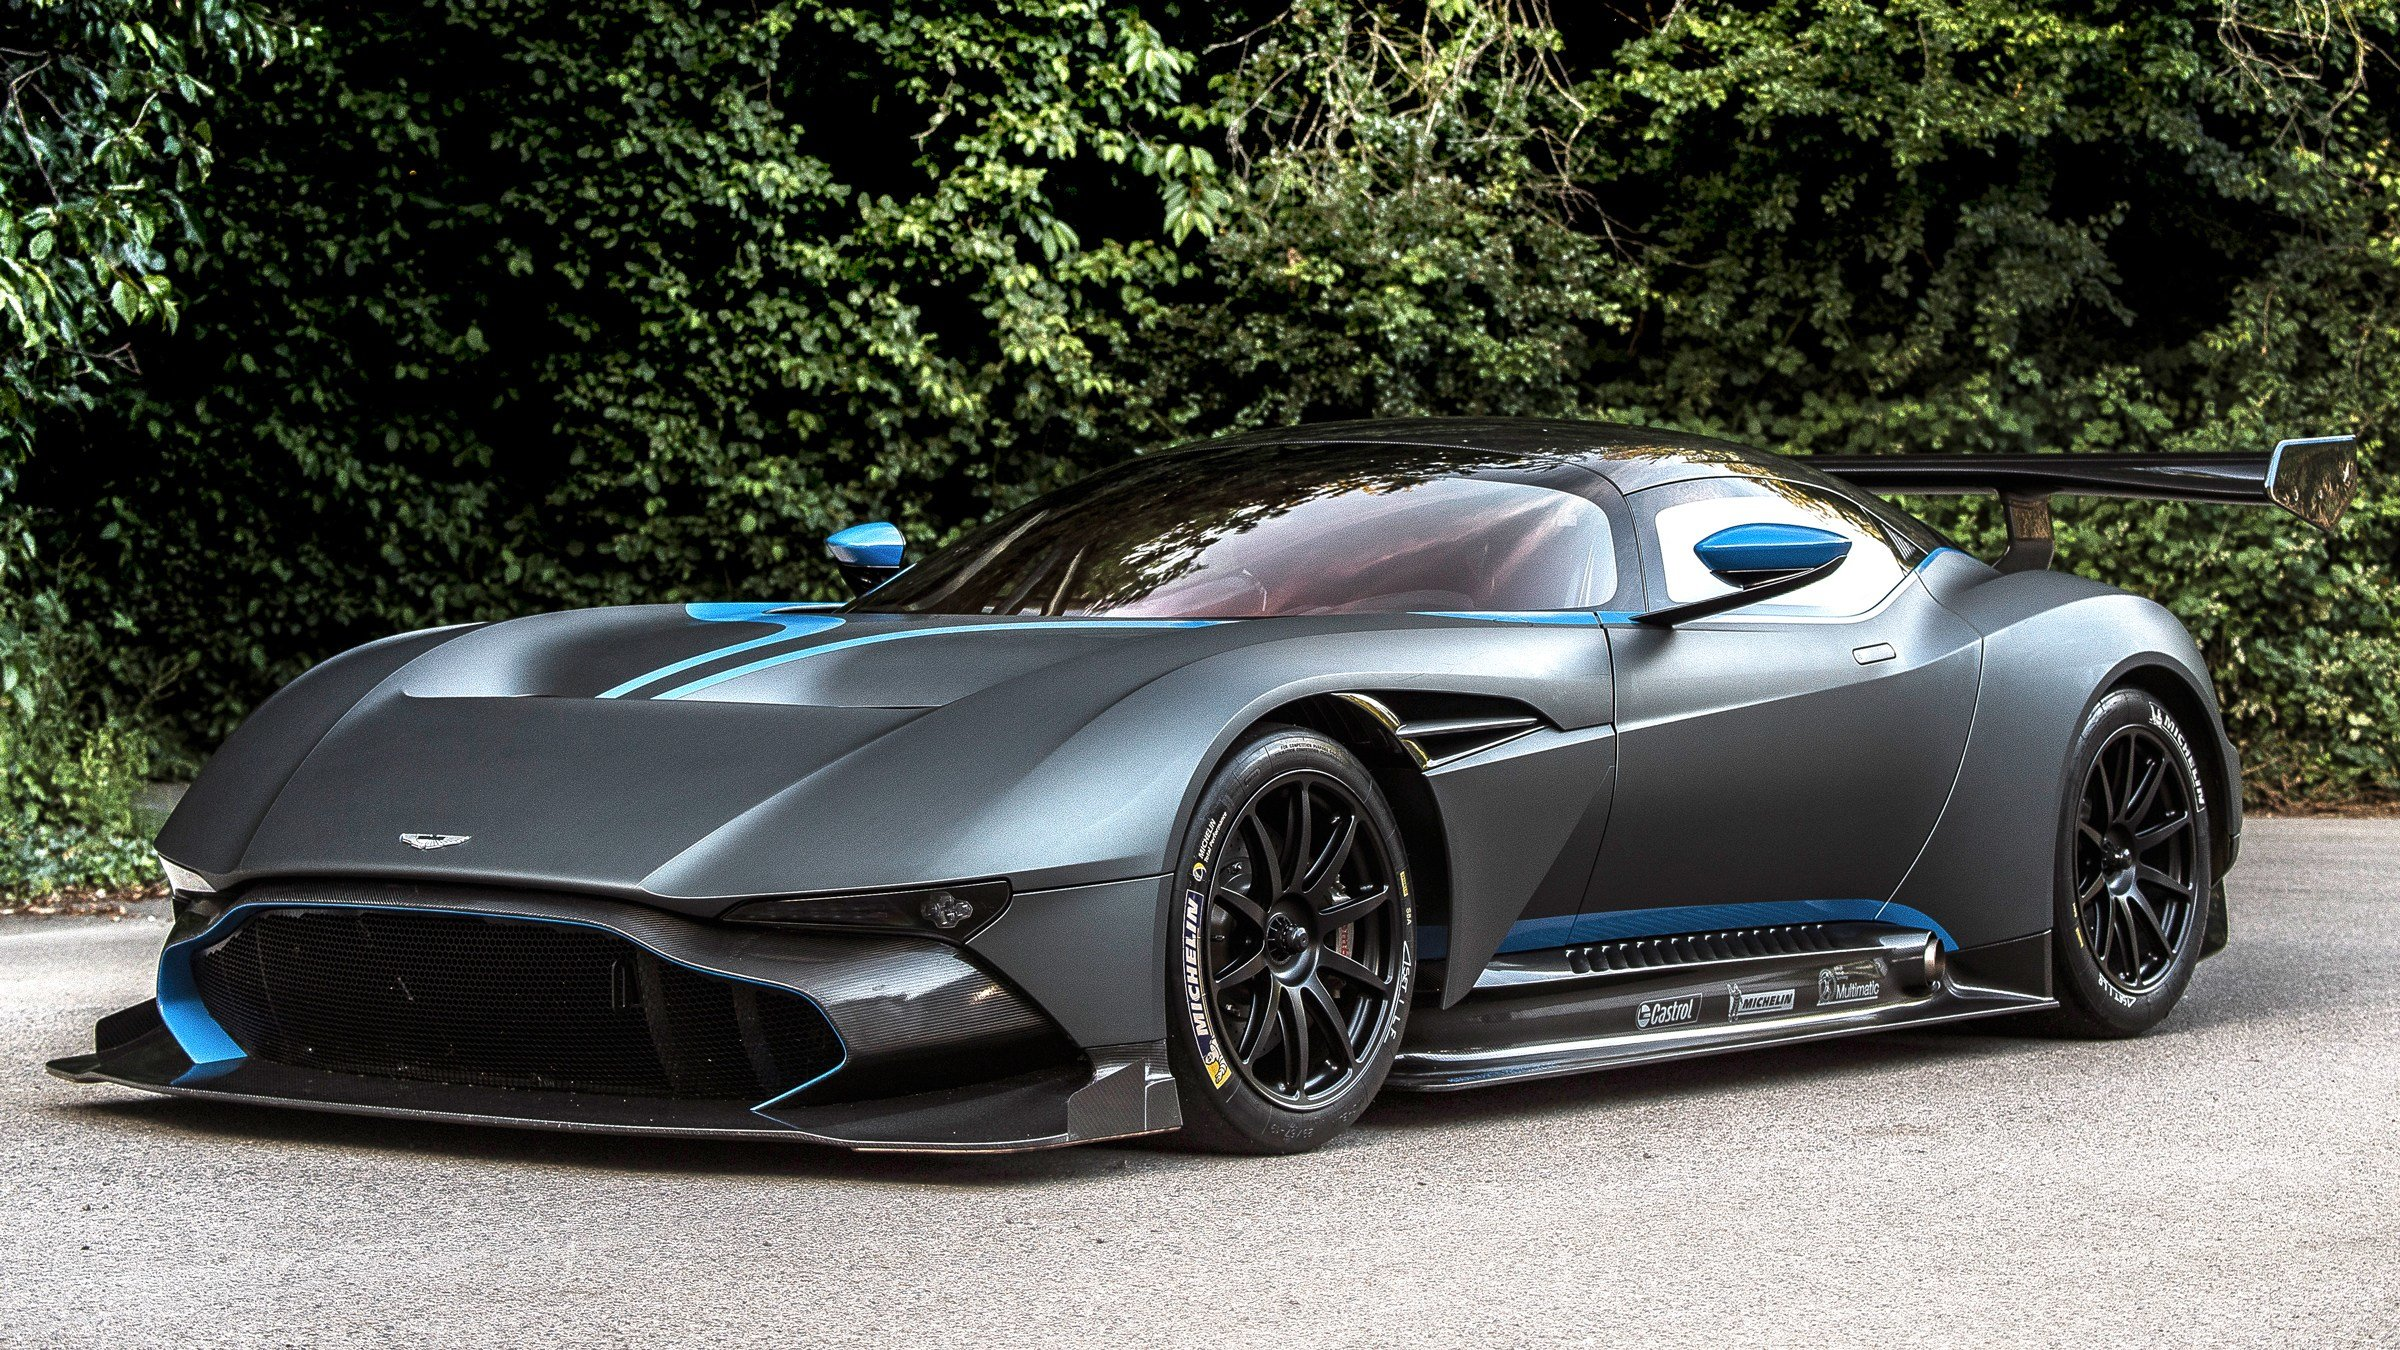 Latest Peek Inside Aston Martin's Totally Bonkers 2 3M Hypercar Free Download